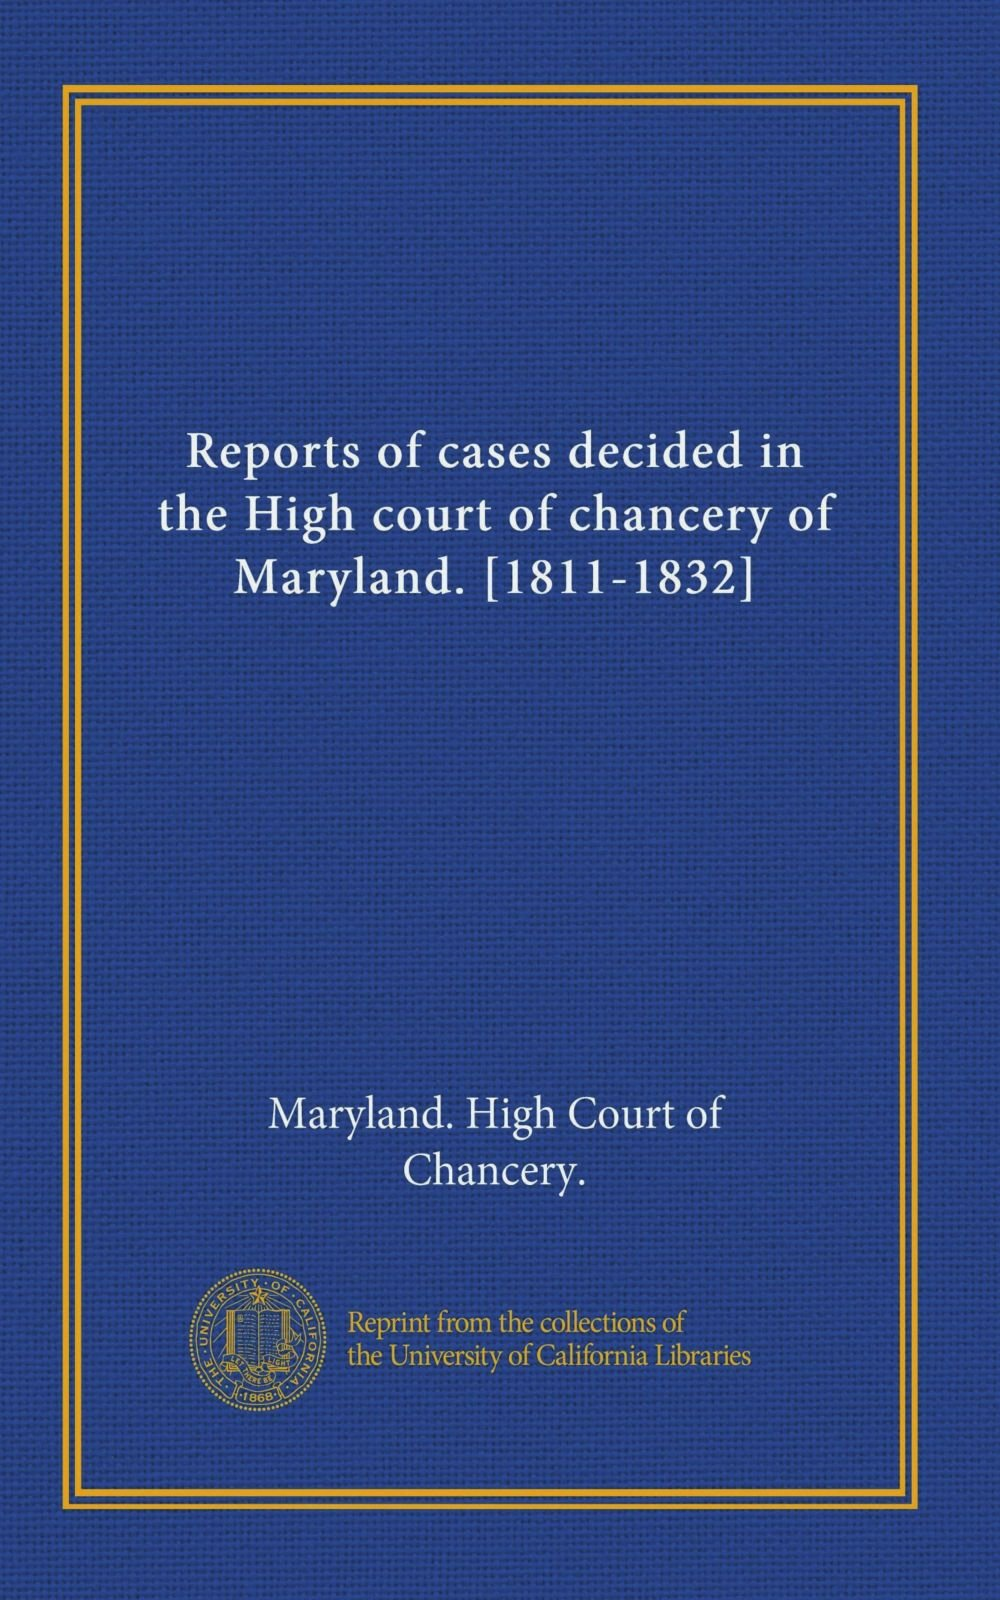 Download Reports of cases decided in the High court of chancery of Maryland. [1811-1832] (v.2) ebook